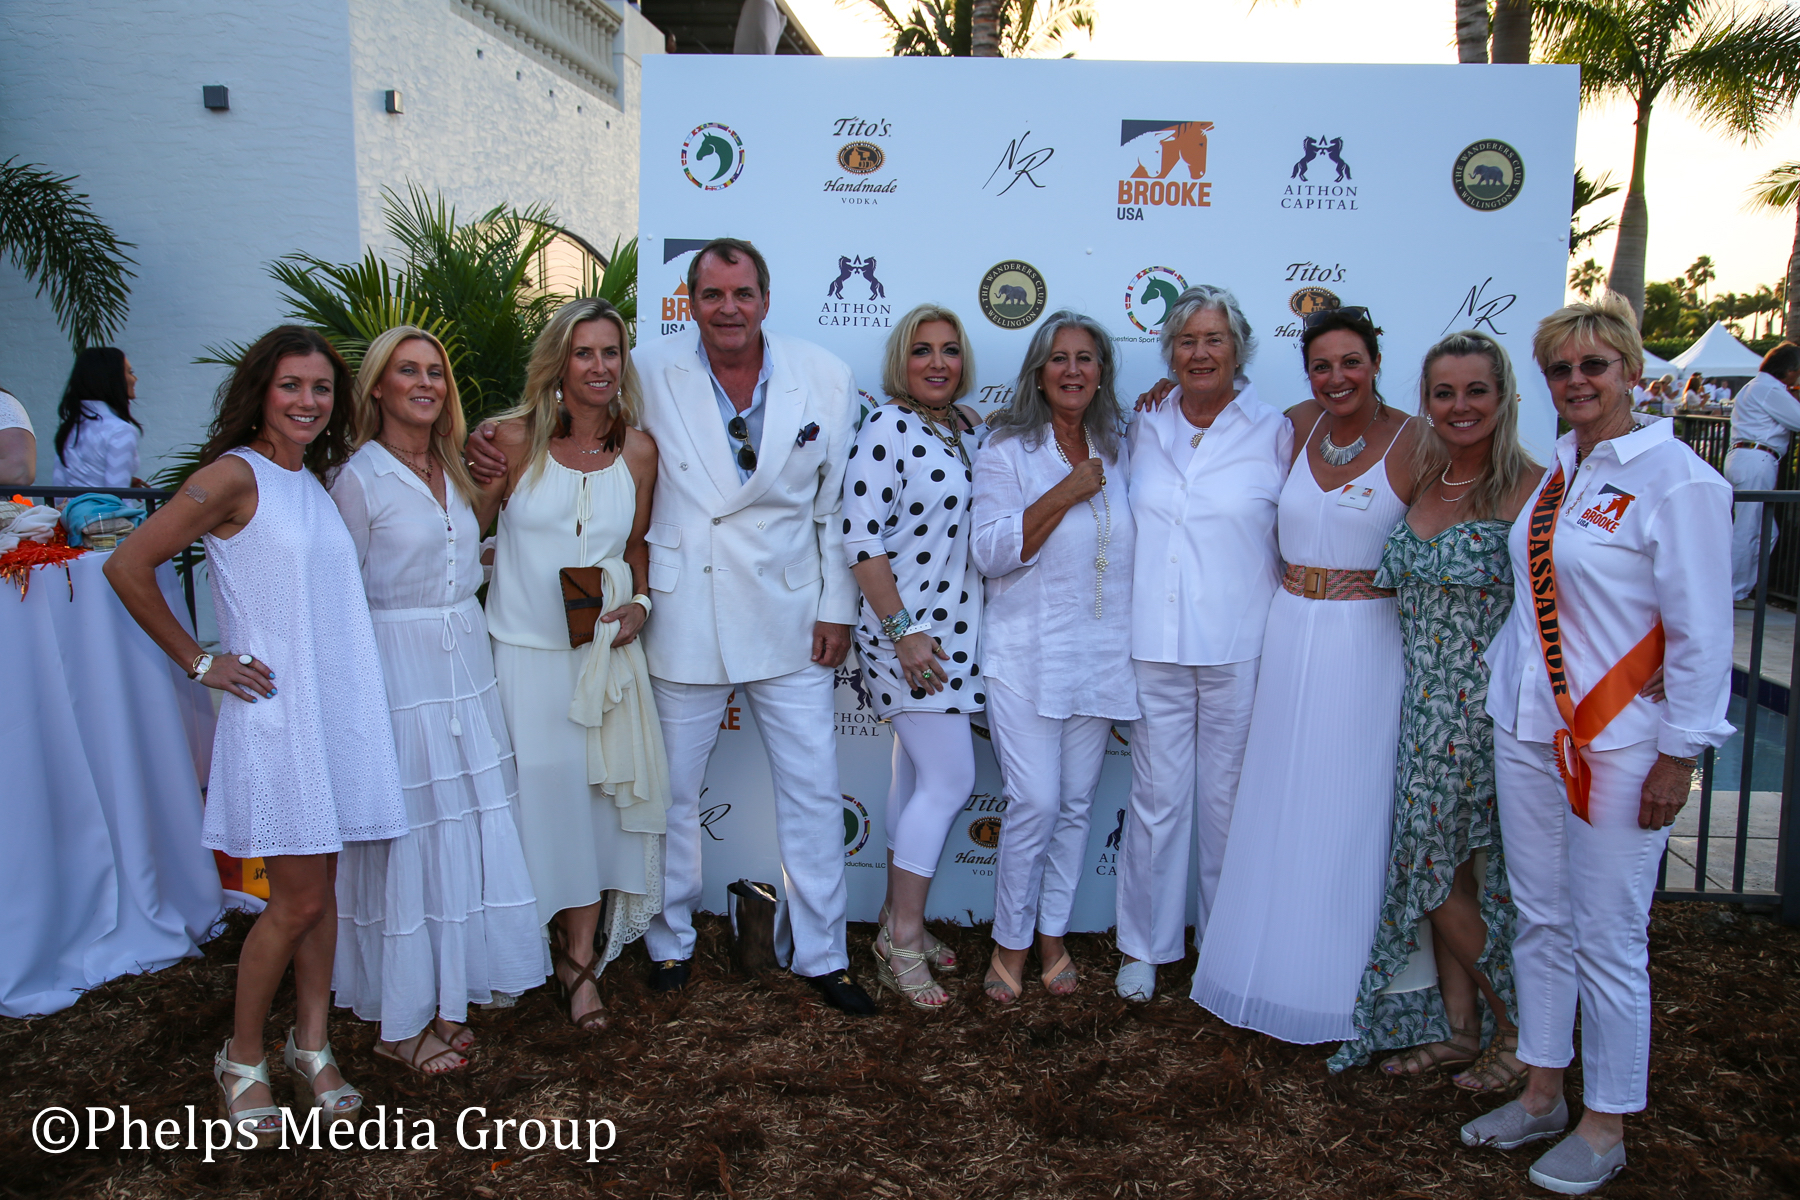 MArgaret Duprey and Friends; Nic Roldan's 2nd Annual Sunset Polo & White Party, FL, by Phelps Media.jpg